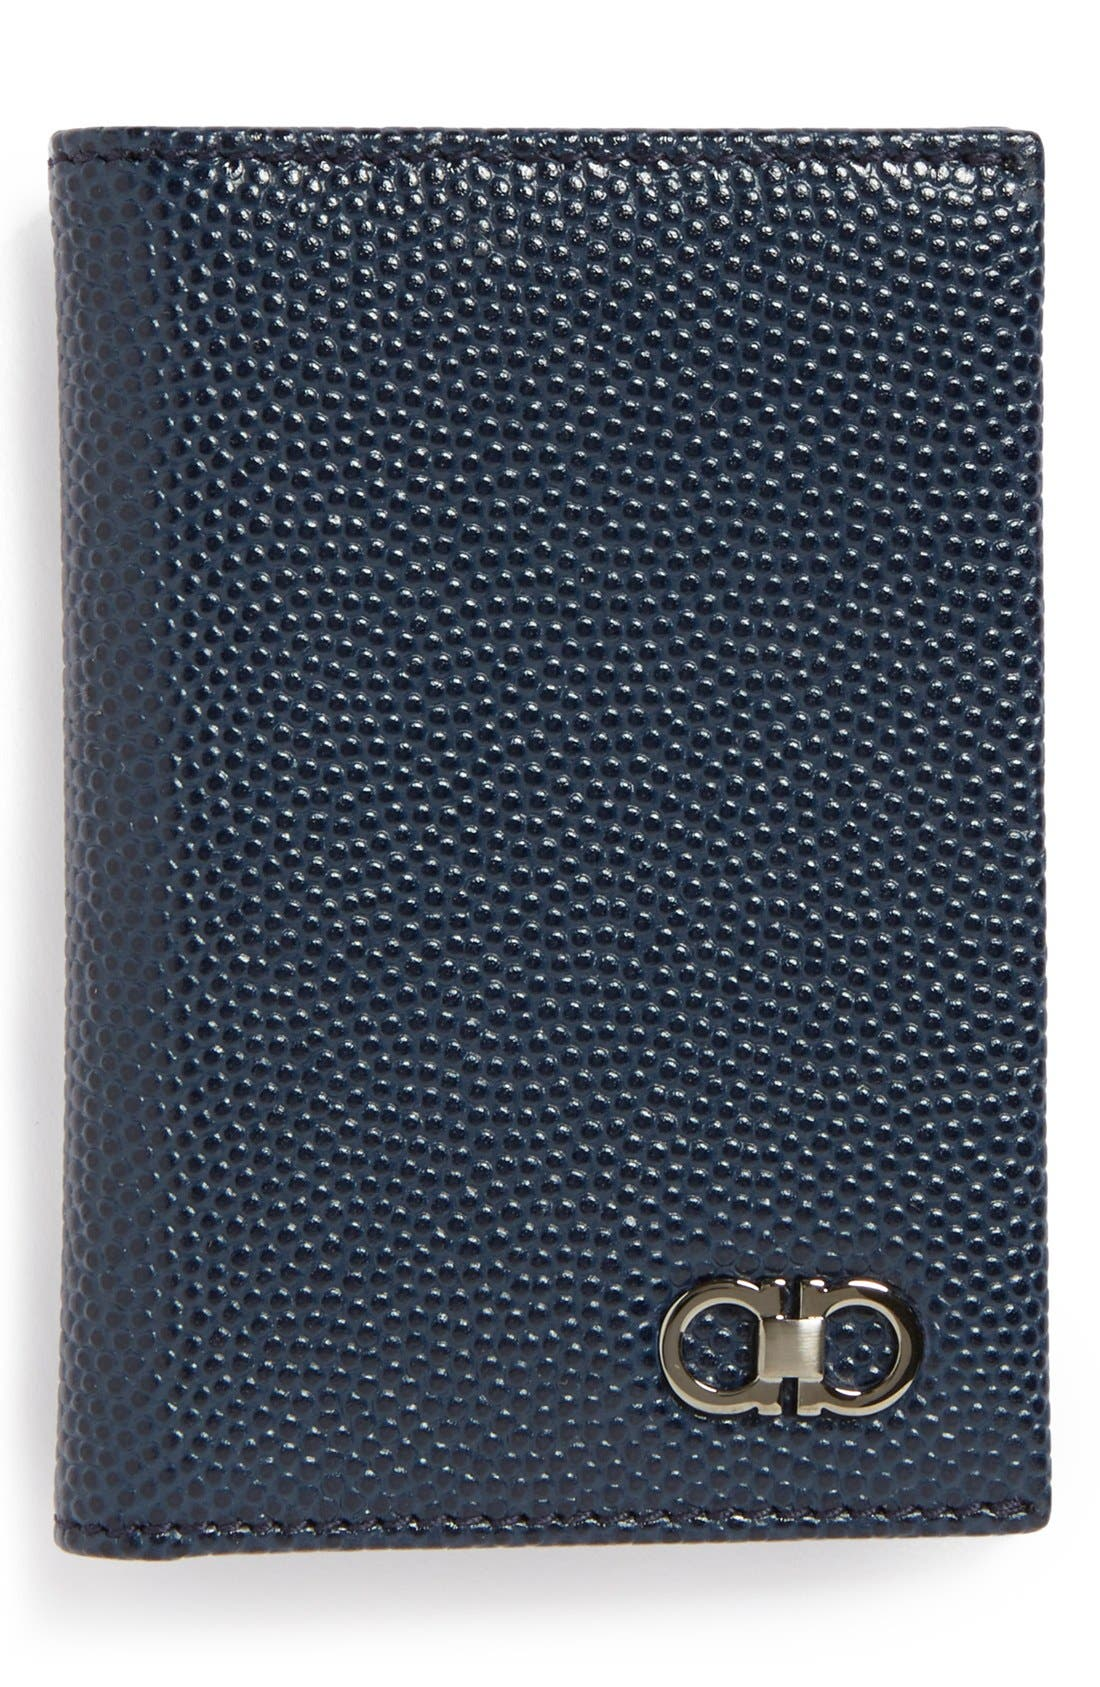 Alternate Image 1 Selected - Salvatore Ferragamo 'Ten Forty One' Leather Card Case